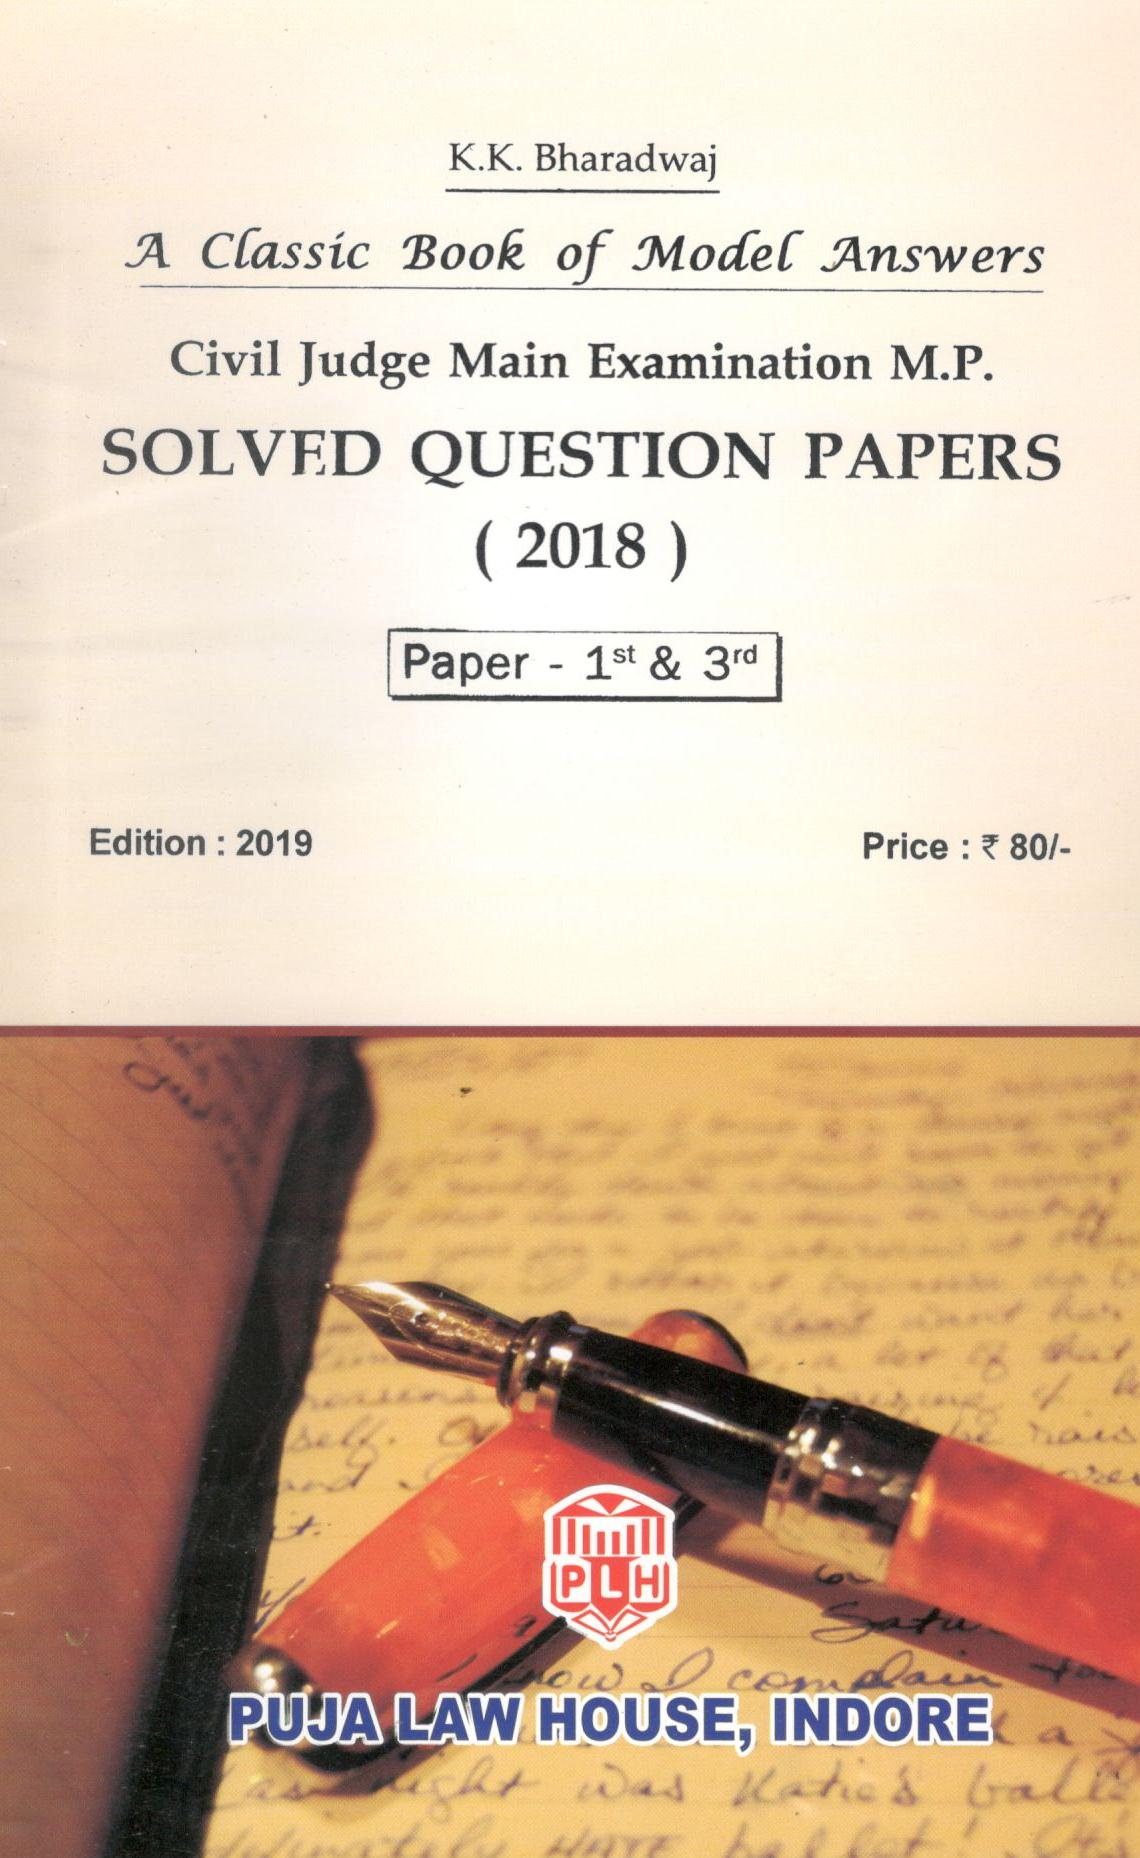 Civil Judge Main Exam M.P. Solved Question Paper 2018